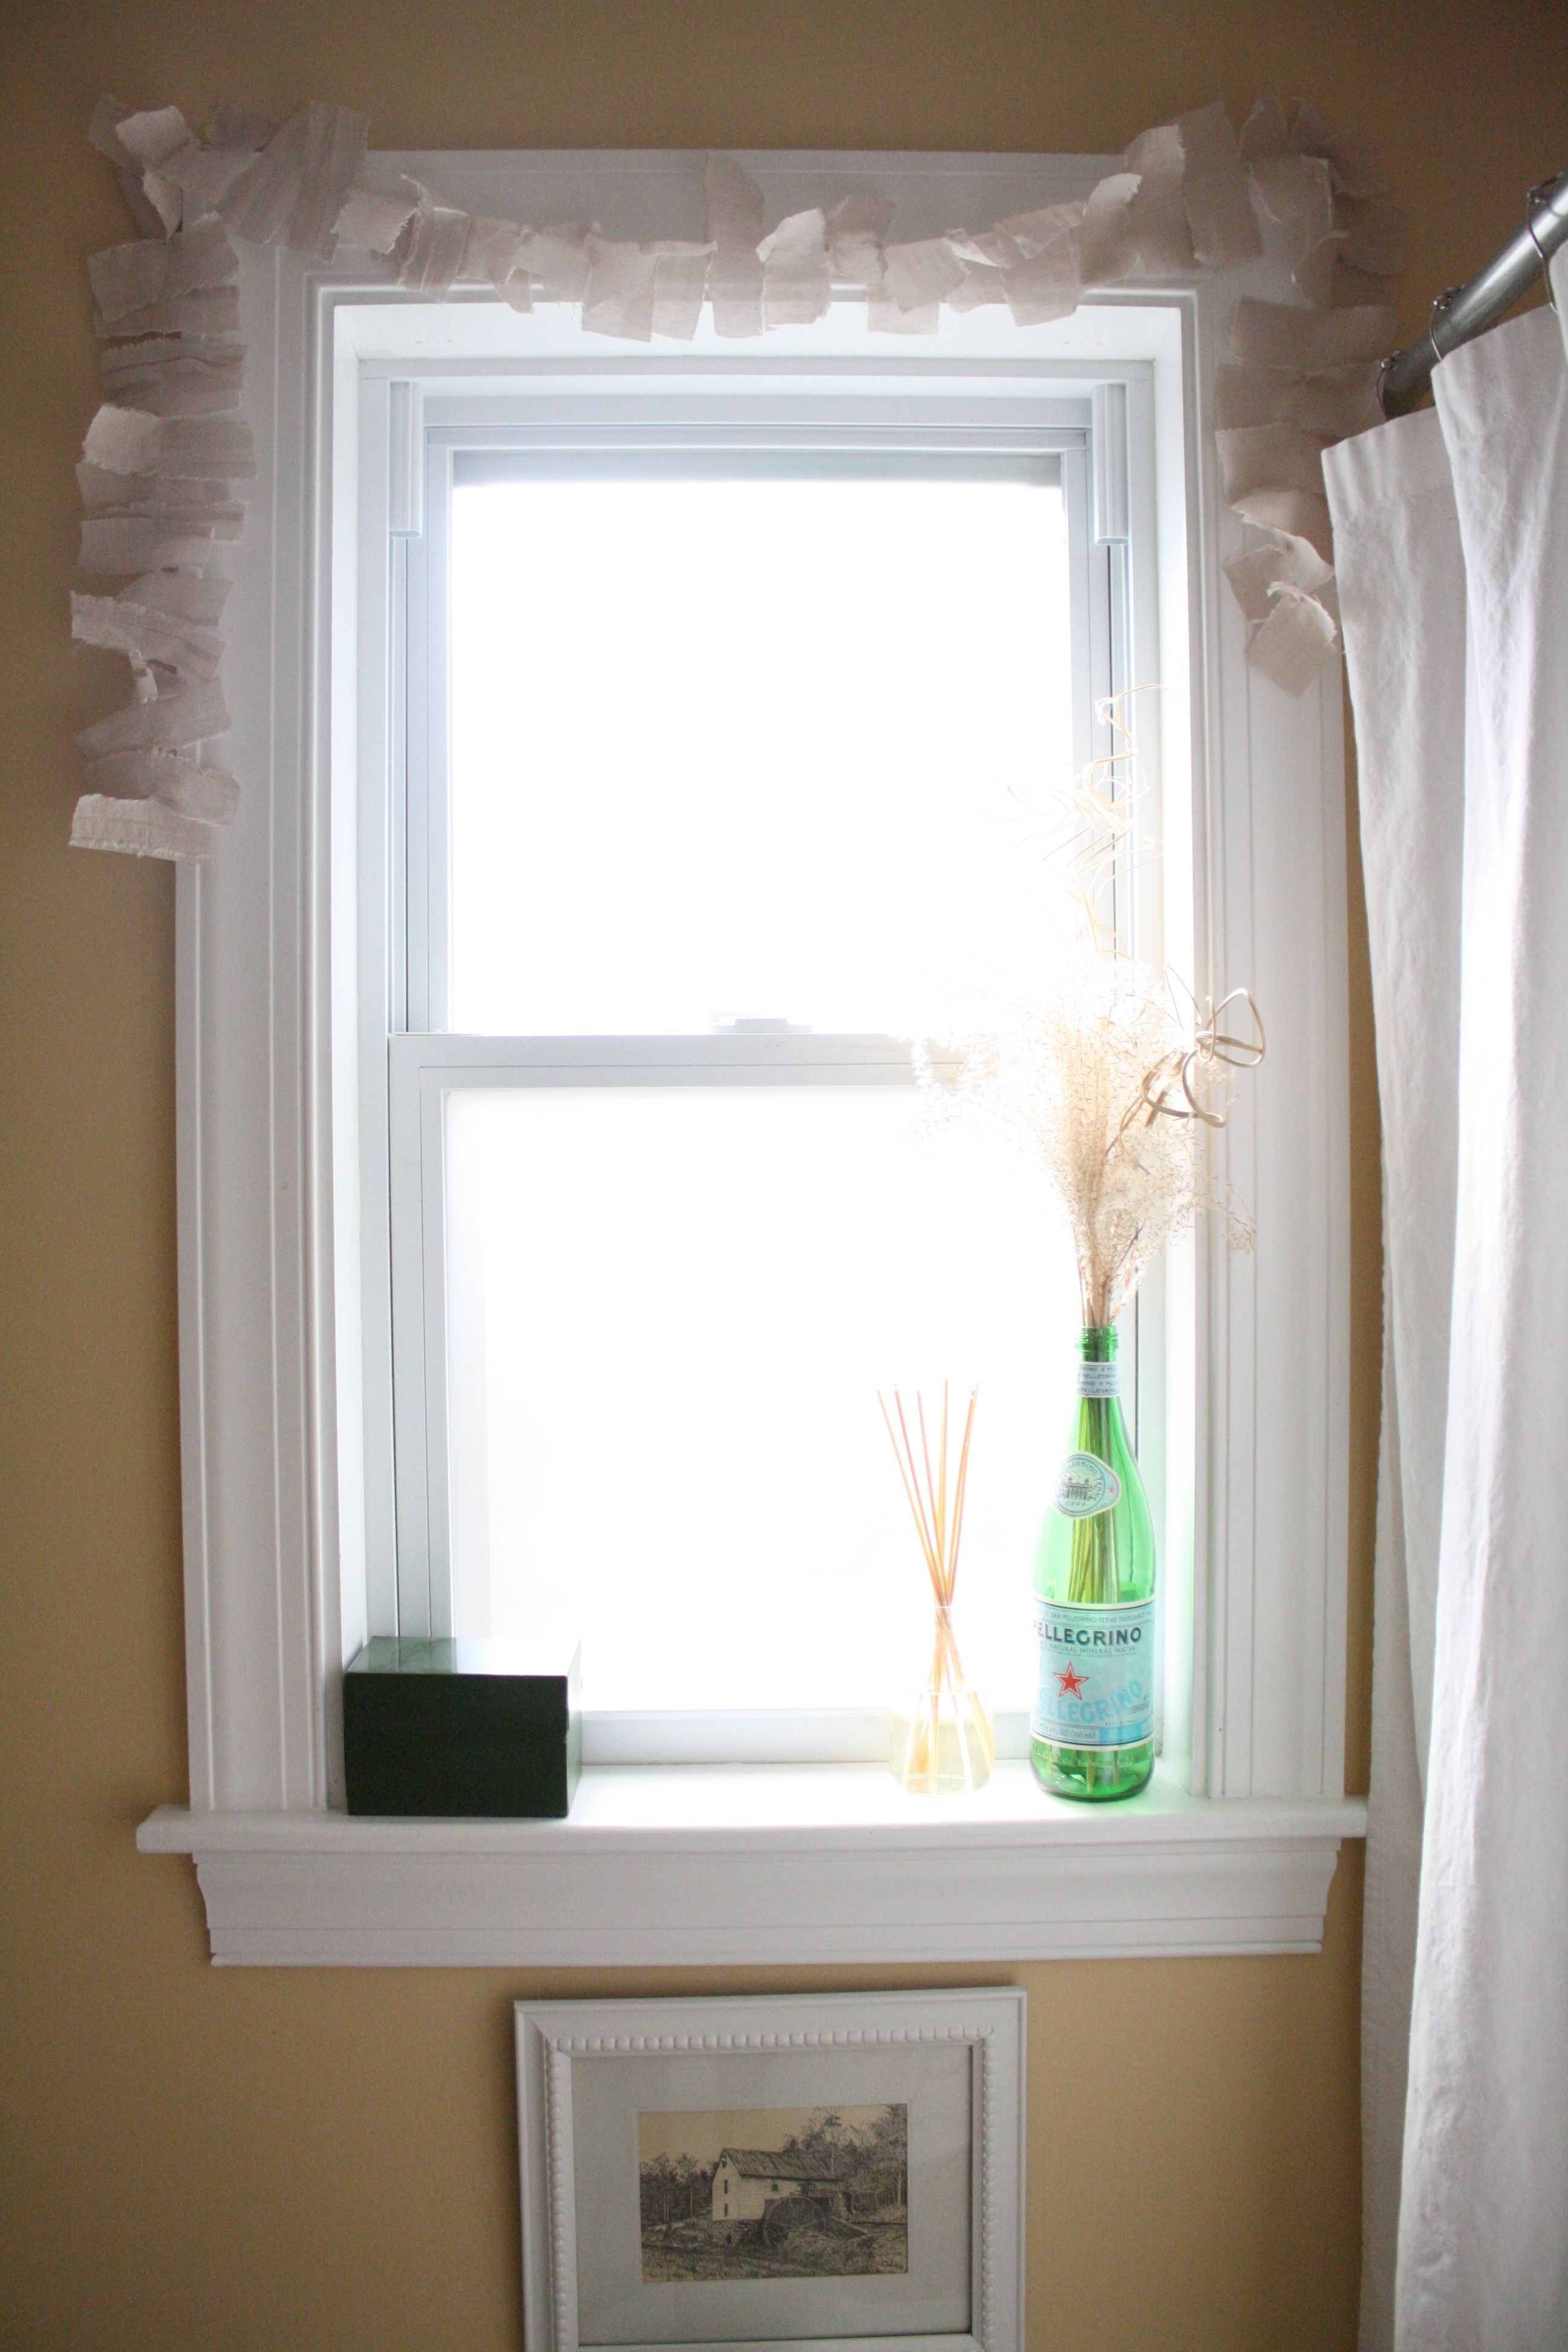 latest posts under: bathroom window | ideas | pinterest | bathroom